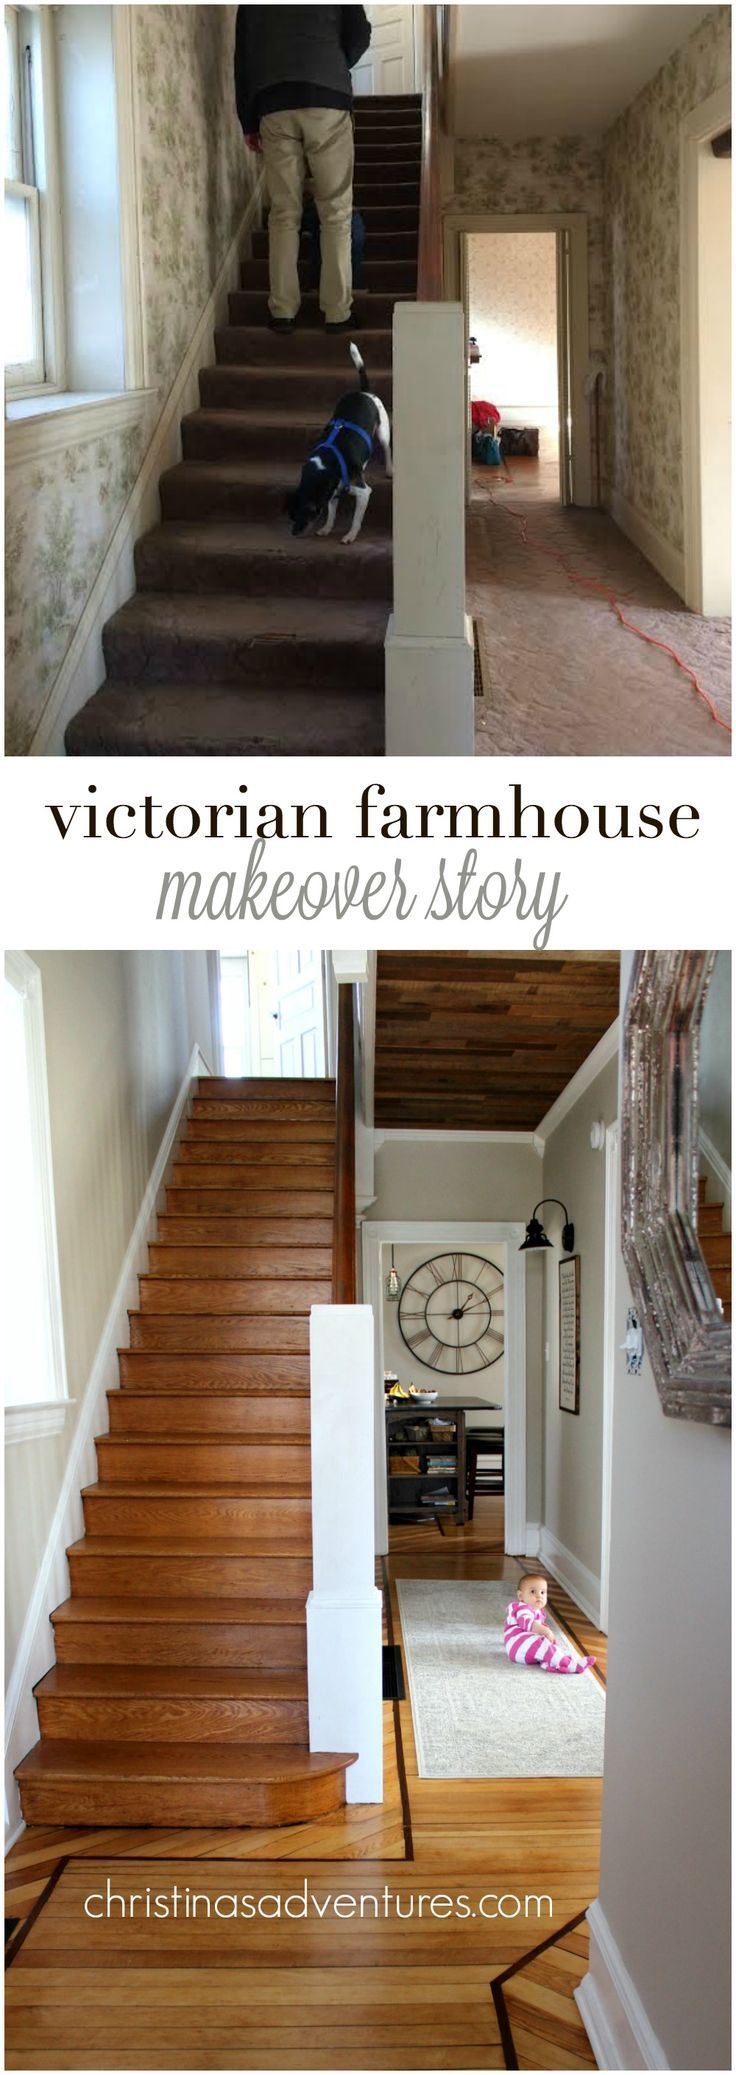 You won't believe this makeover! One of the best we've seen- blending an old fixer upper Victorian house into a collected farmhouse home. Such great DIY ideas in here!